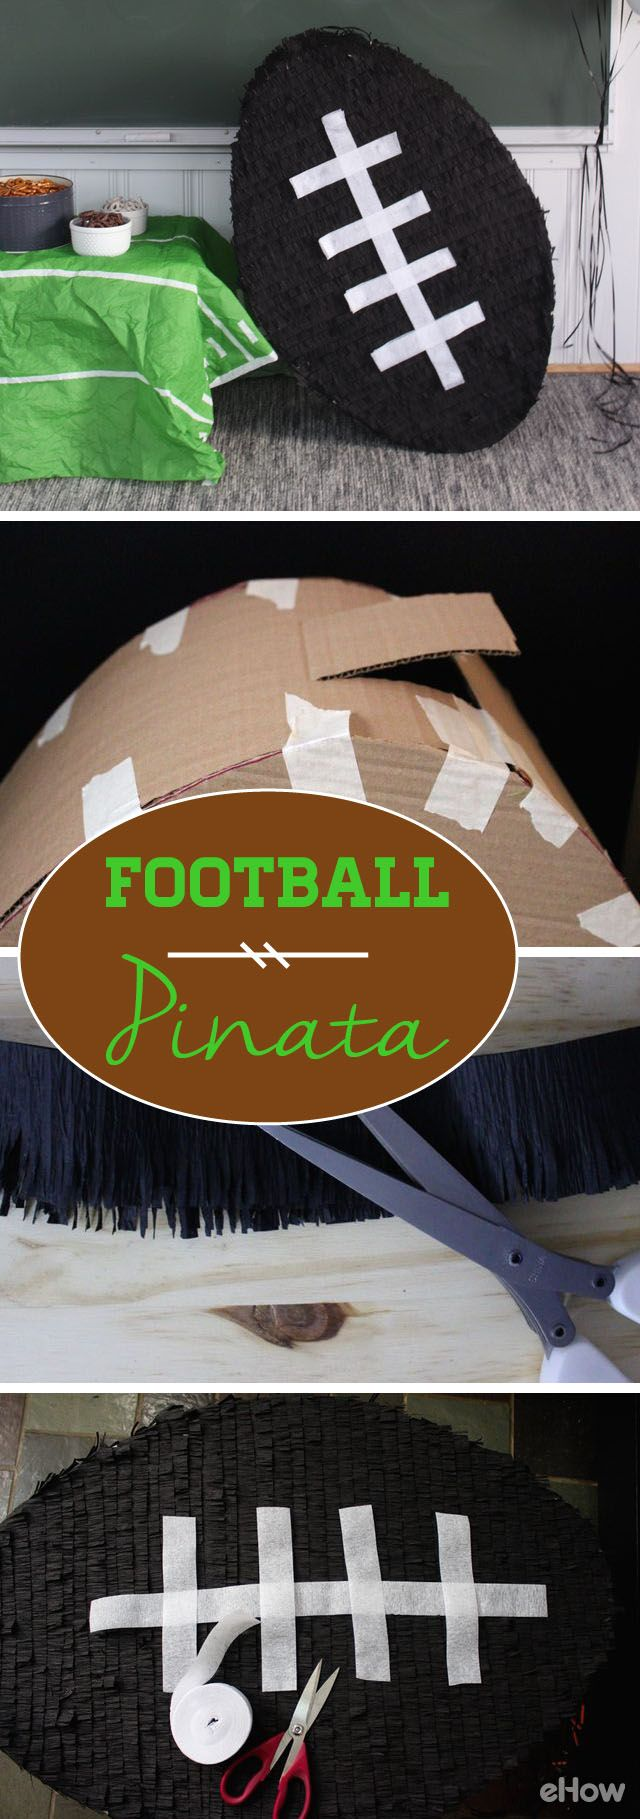 How to make your own female sonic character ehow - How Much Fun Is This Pinata Shaped As A Football Diy This Yourself For A